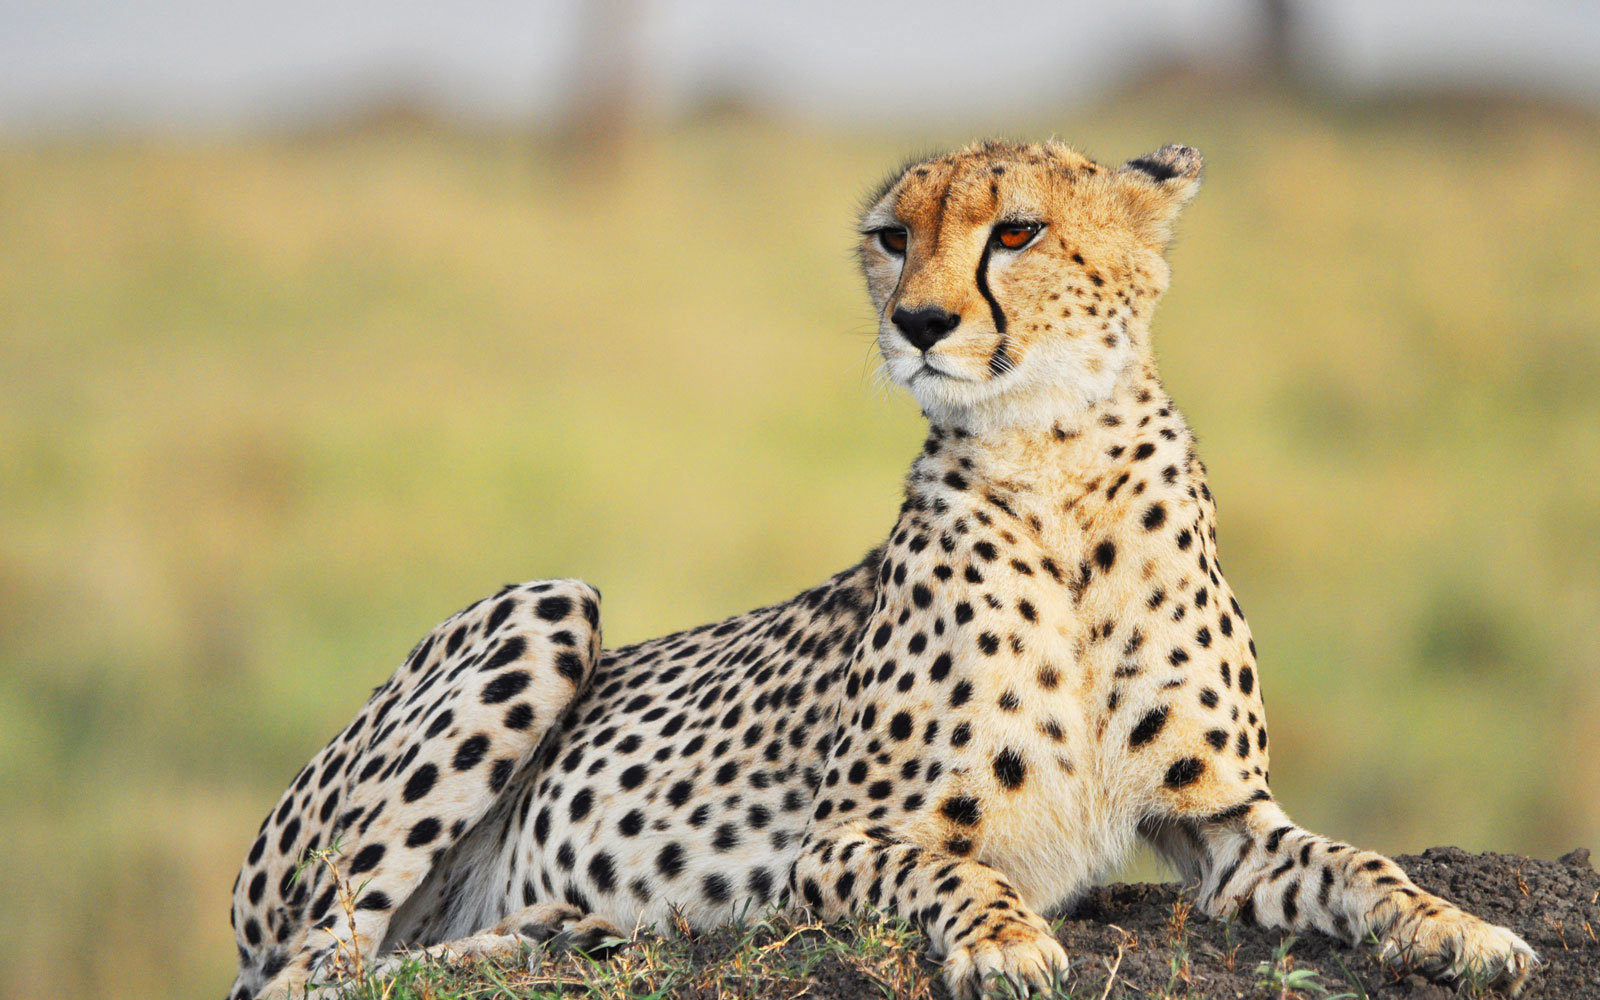 A Man On Safari Captured The Moment A Cheetah Jumped Into